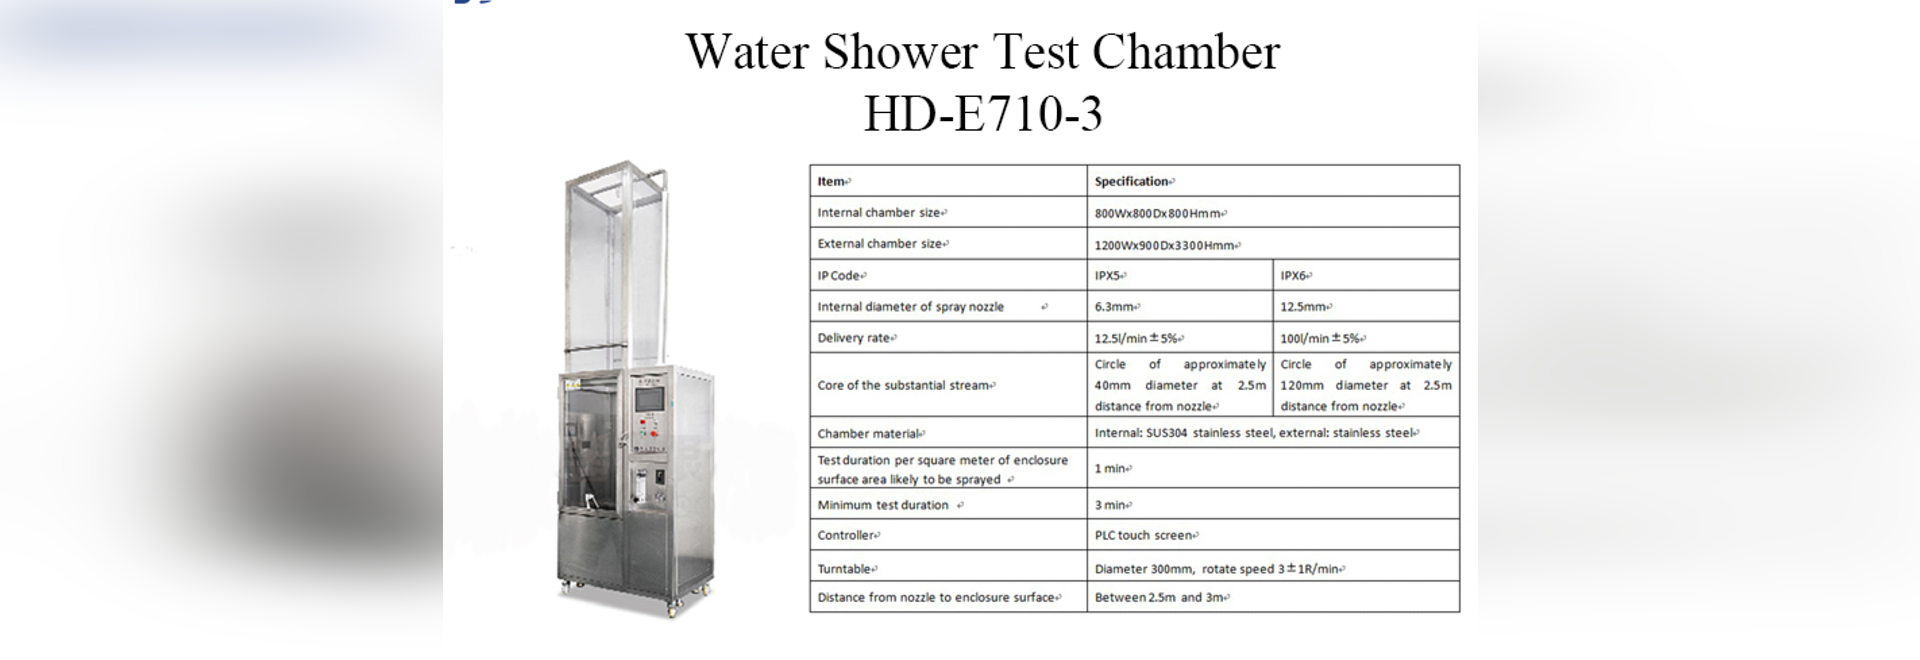 Water Shower Test Chamber